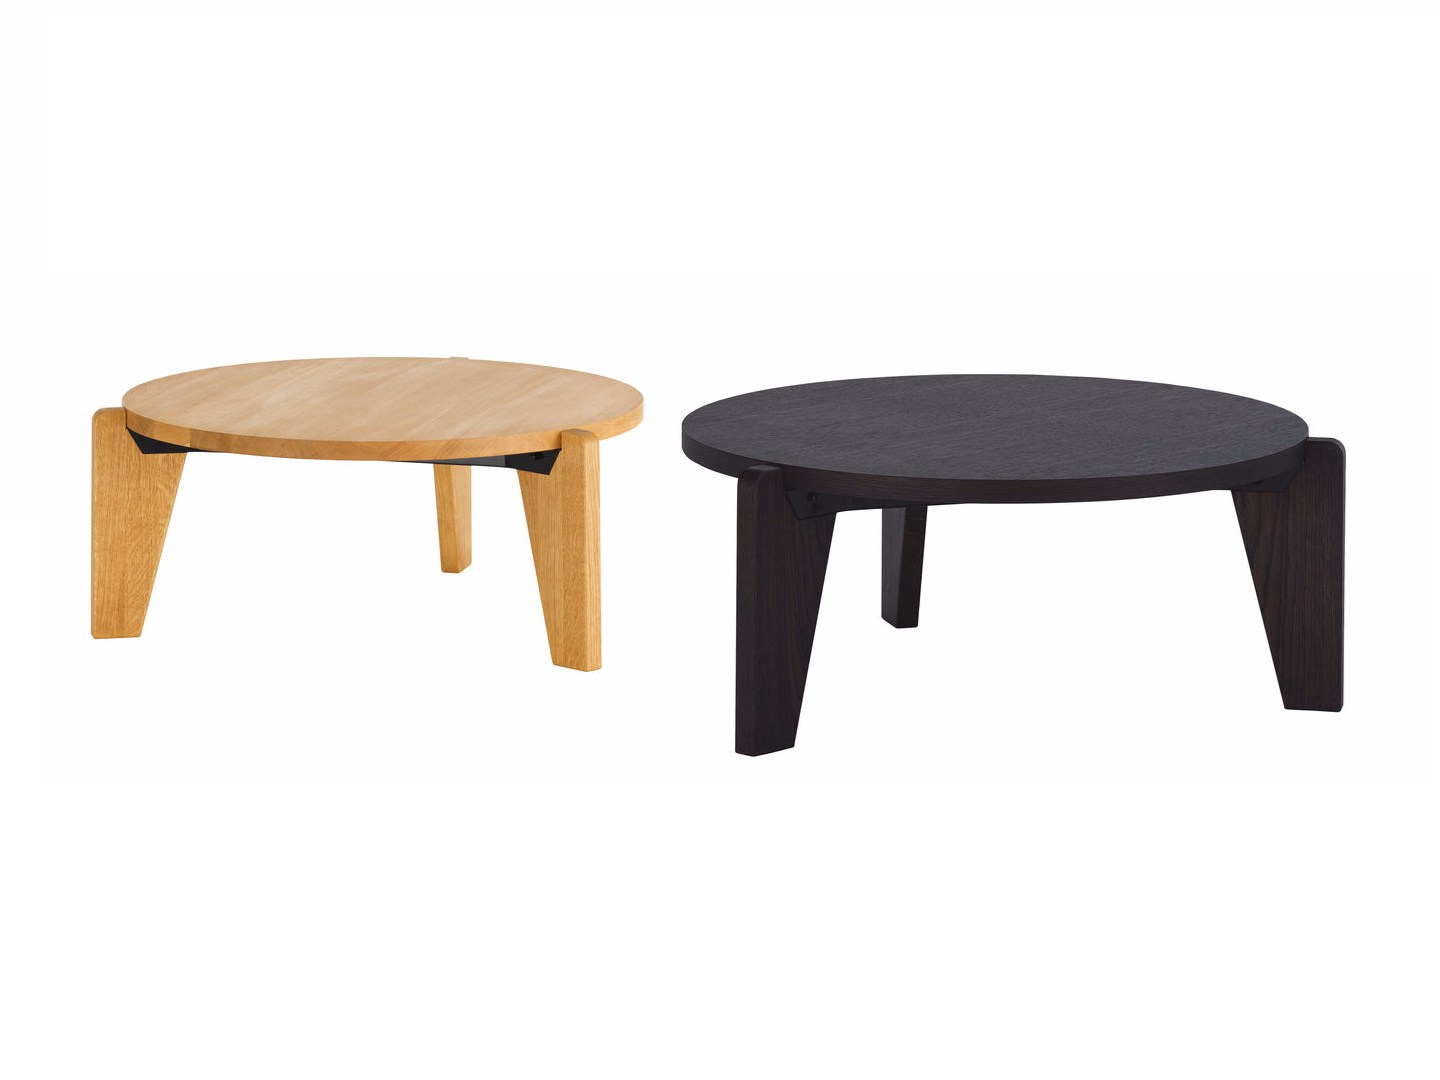 table basse ronde en bois gu ridon bas by vitra design jean prouv. Black Bedroom Furniture Sets. Home Design Ideas